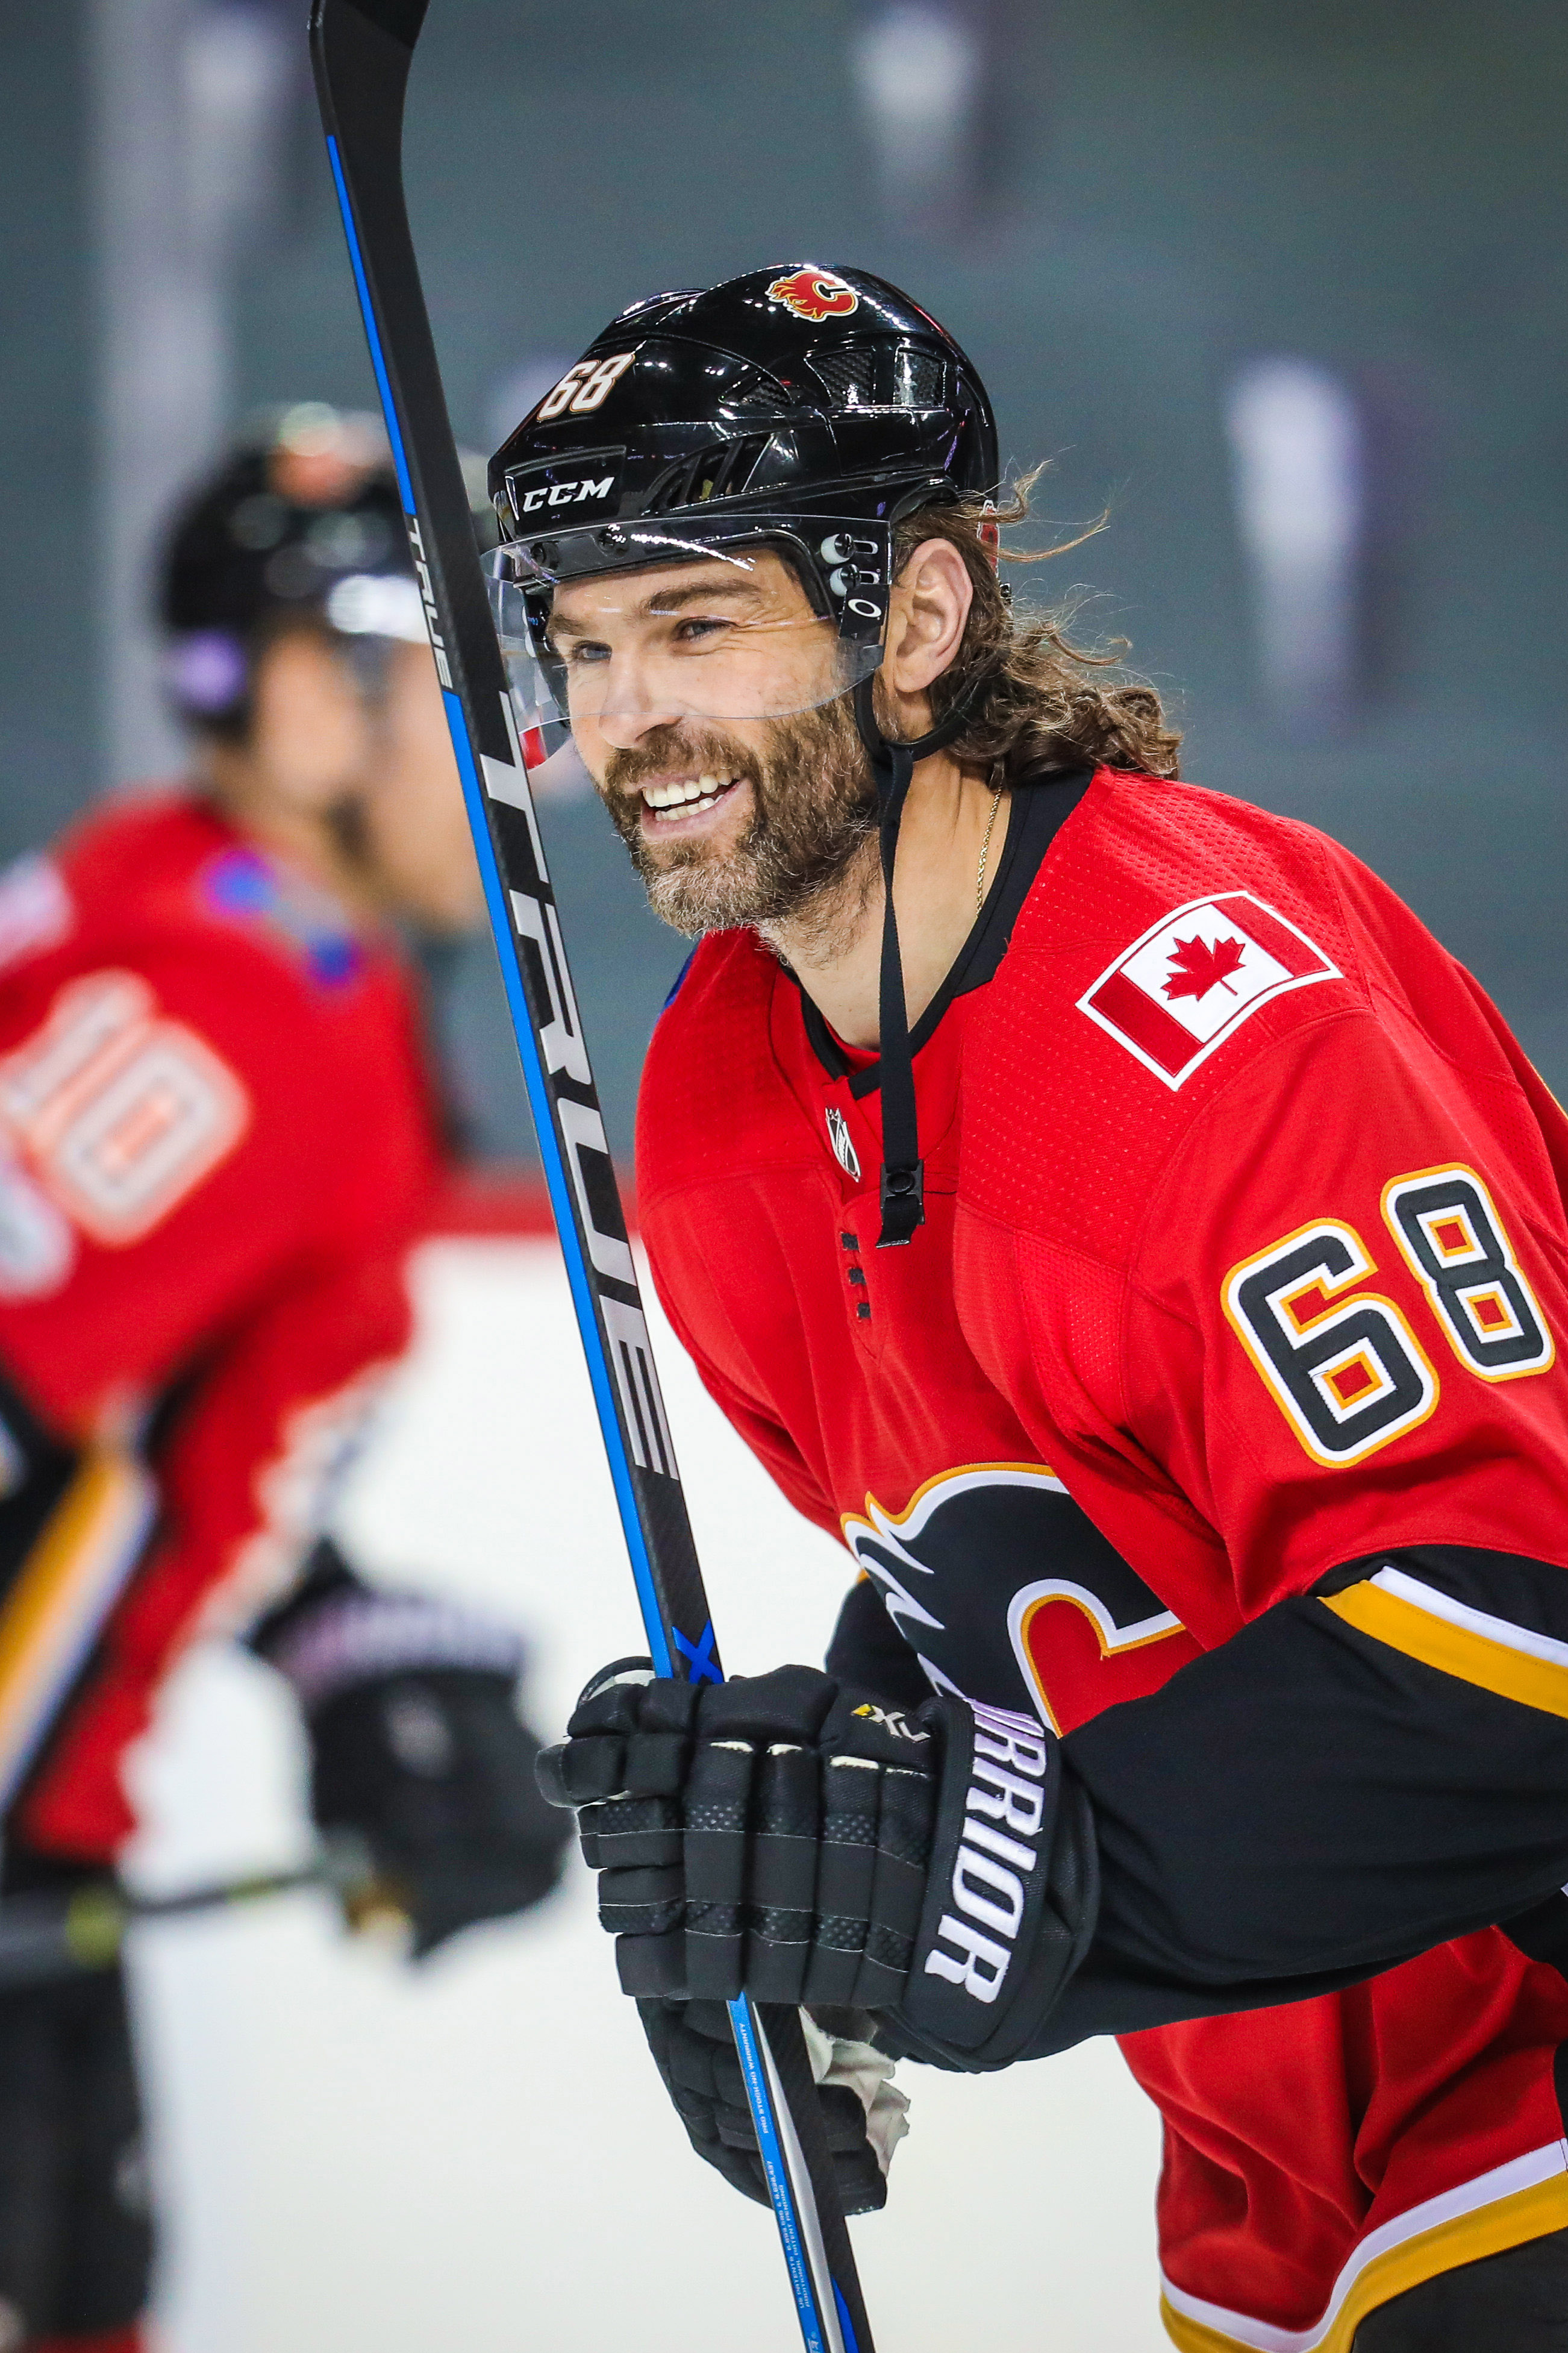 newest eba02 5de4c Next Steps For Jaromir Jagr & The Calgary Flames